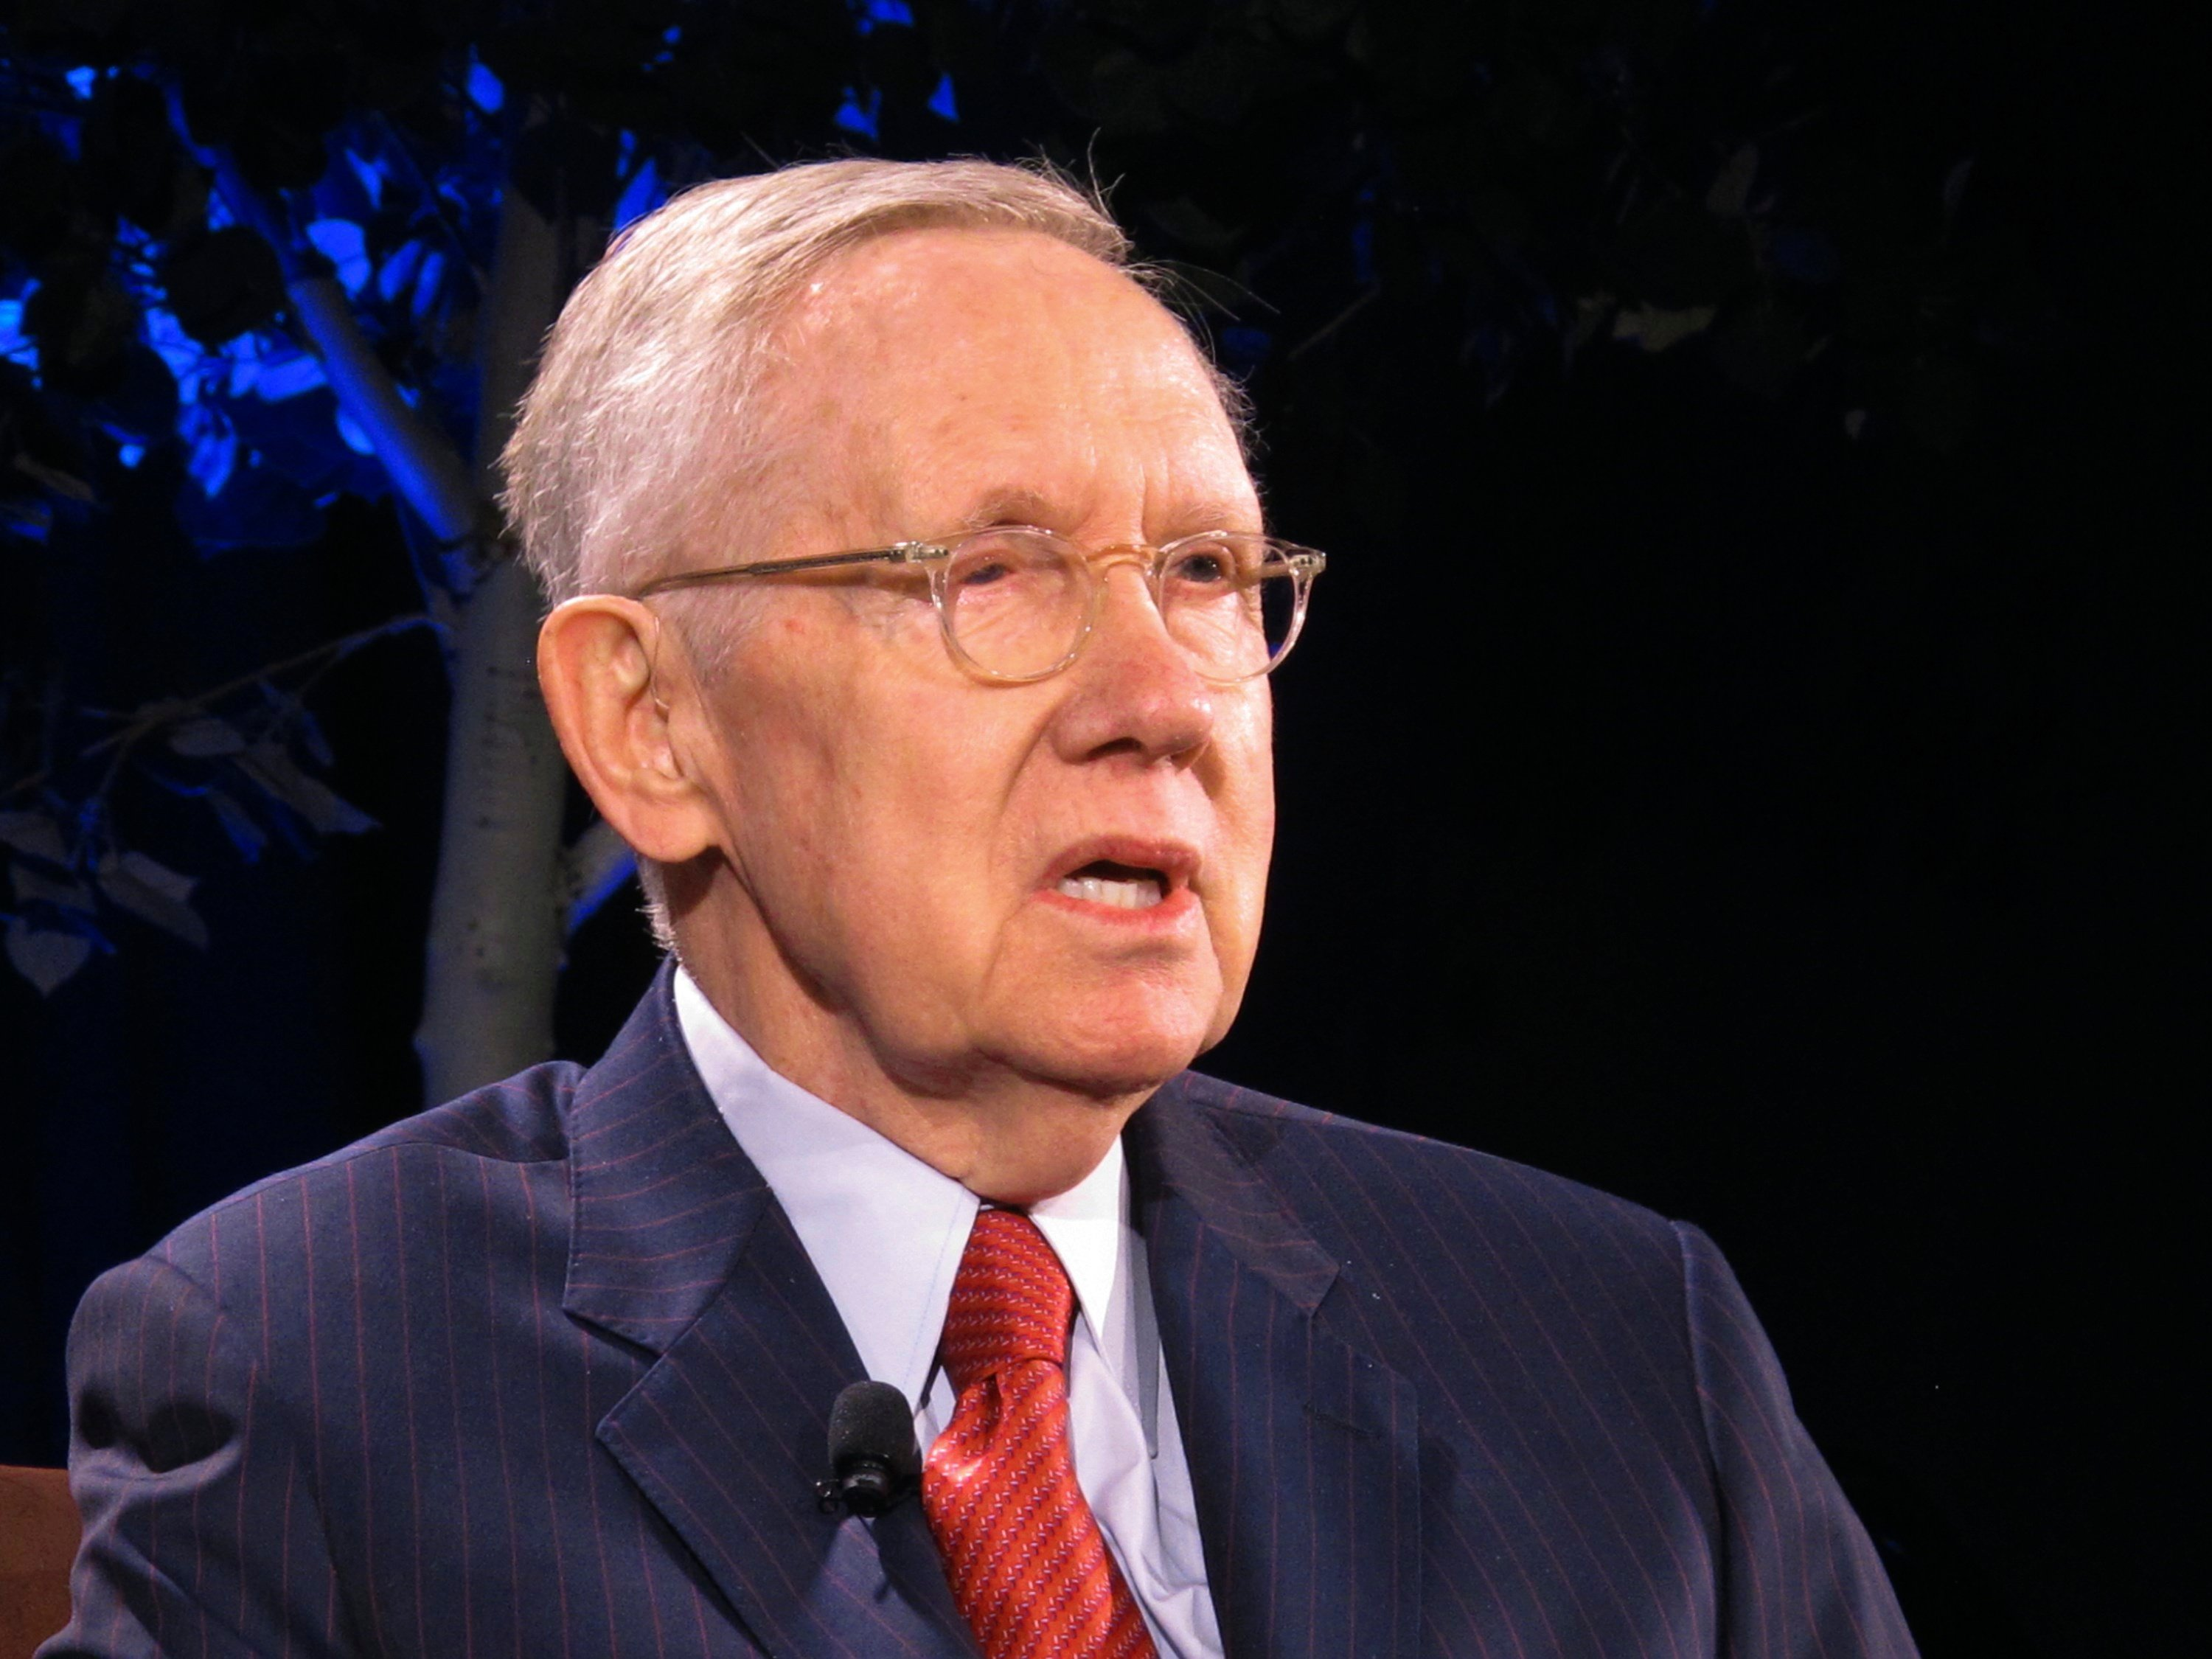 Former Democratic leader Harry Reid is being treated for pancreatic cancer